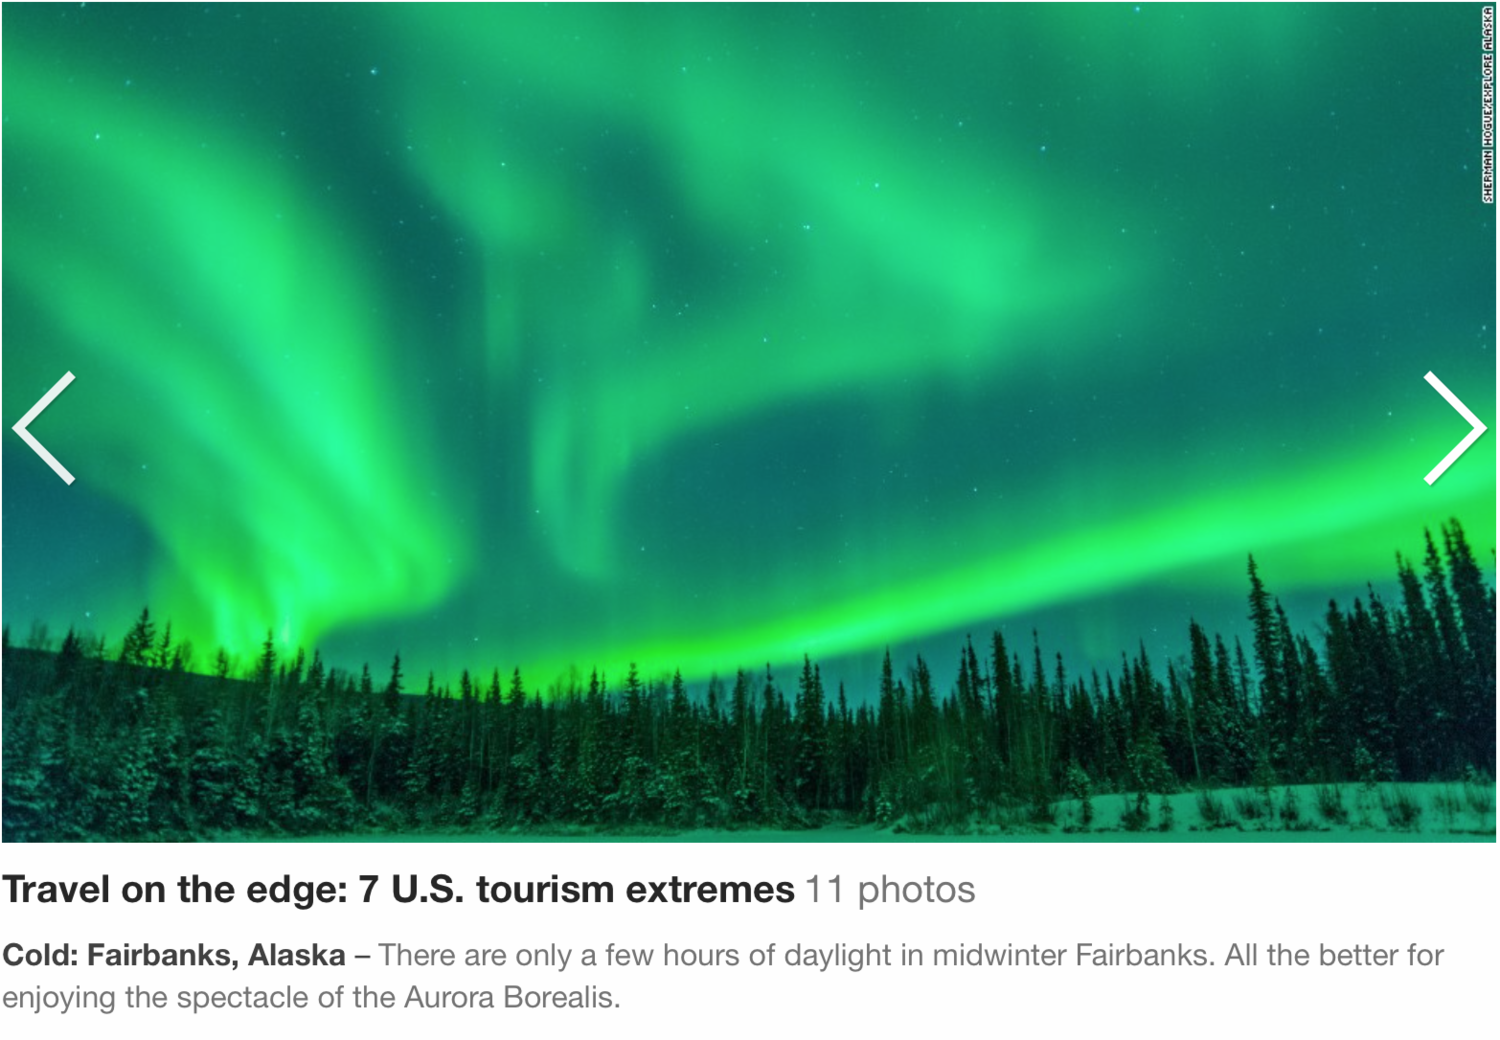 CNN Travel used two of my photos in an online story about U.S. Tourism Extremes on slide 2 and 3.